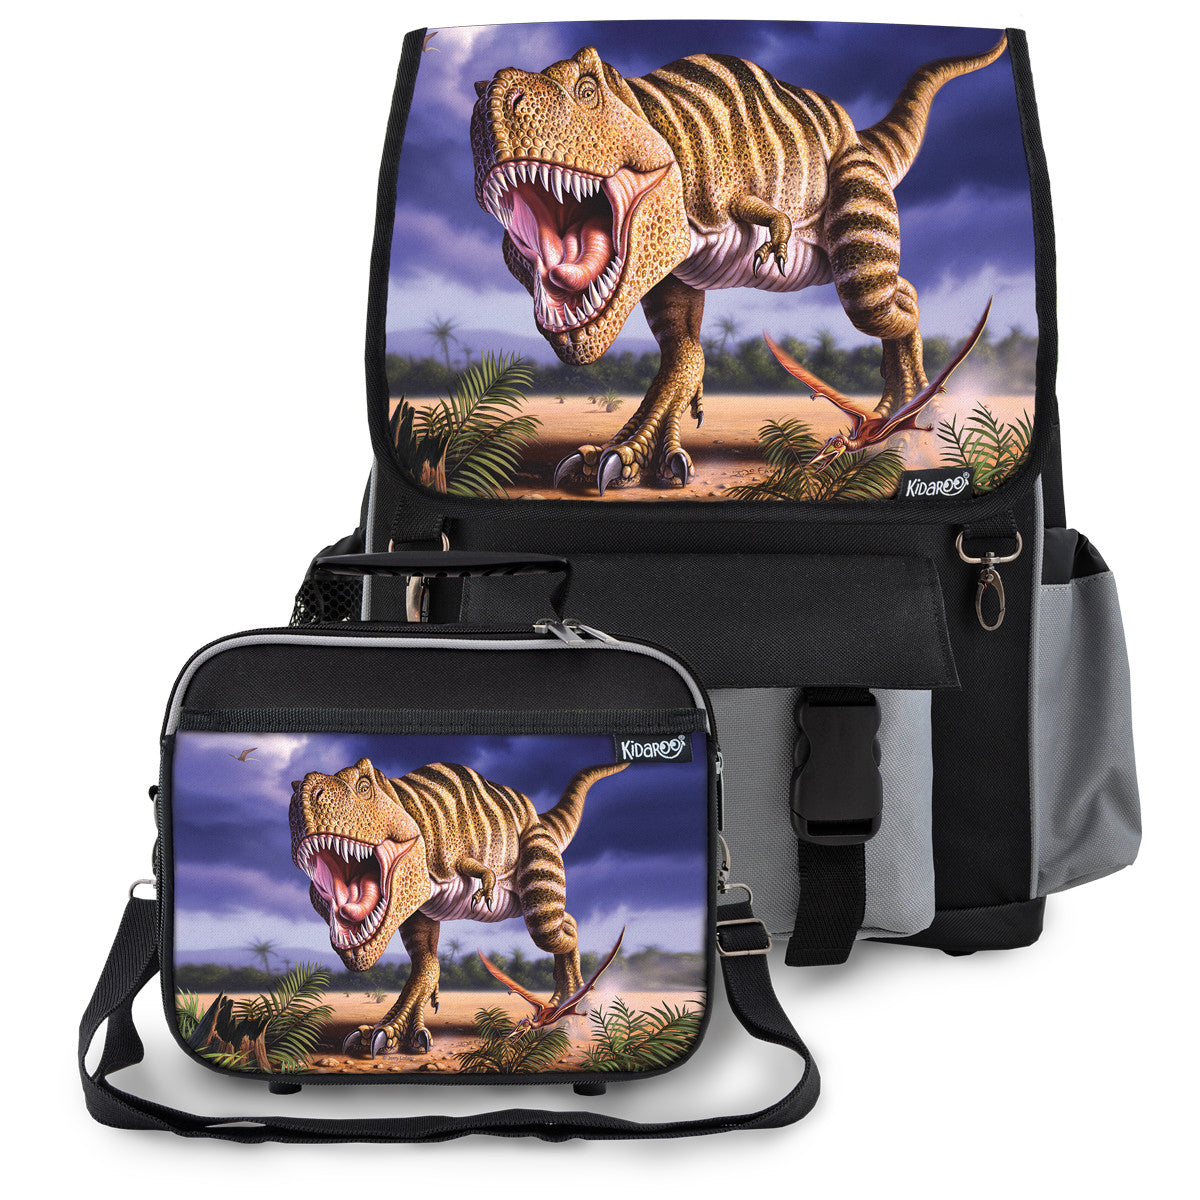 Striped T-Rex Dinosaur School Backpack & Lunchbox Set for Boys, Girls, Kids